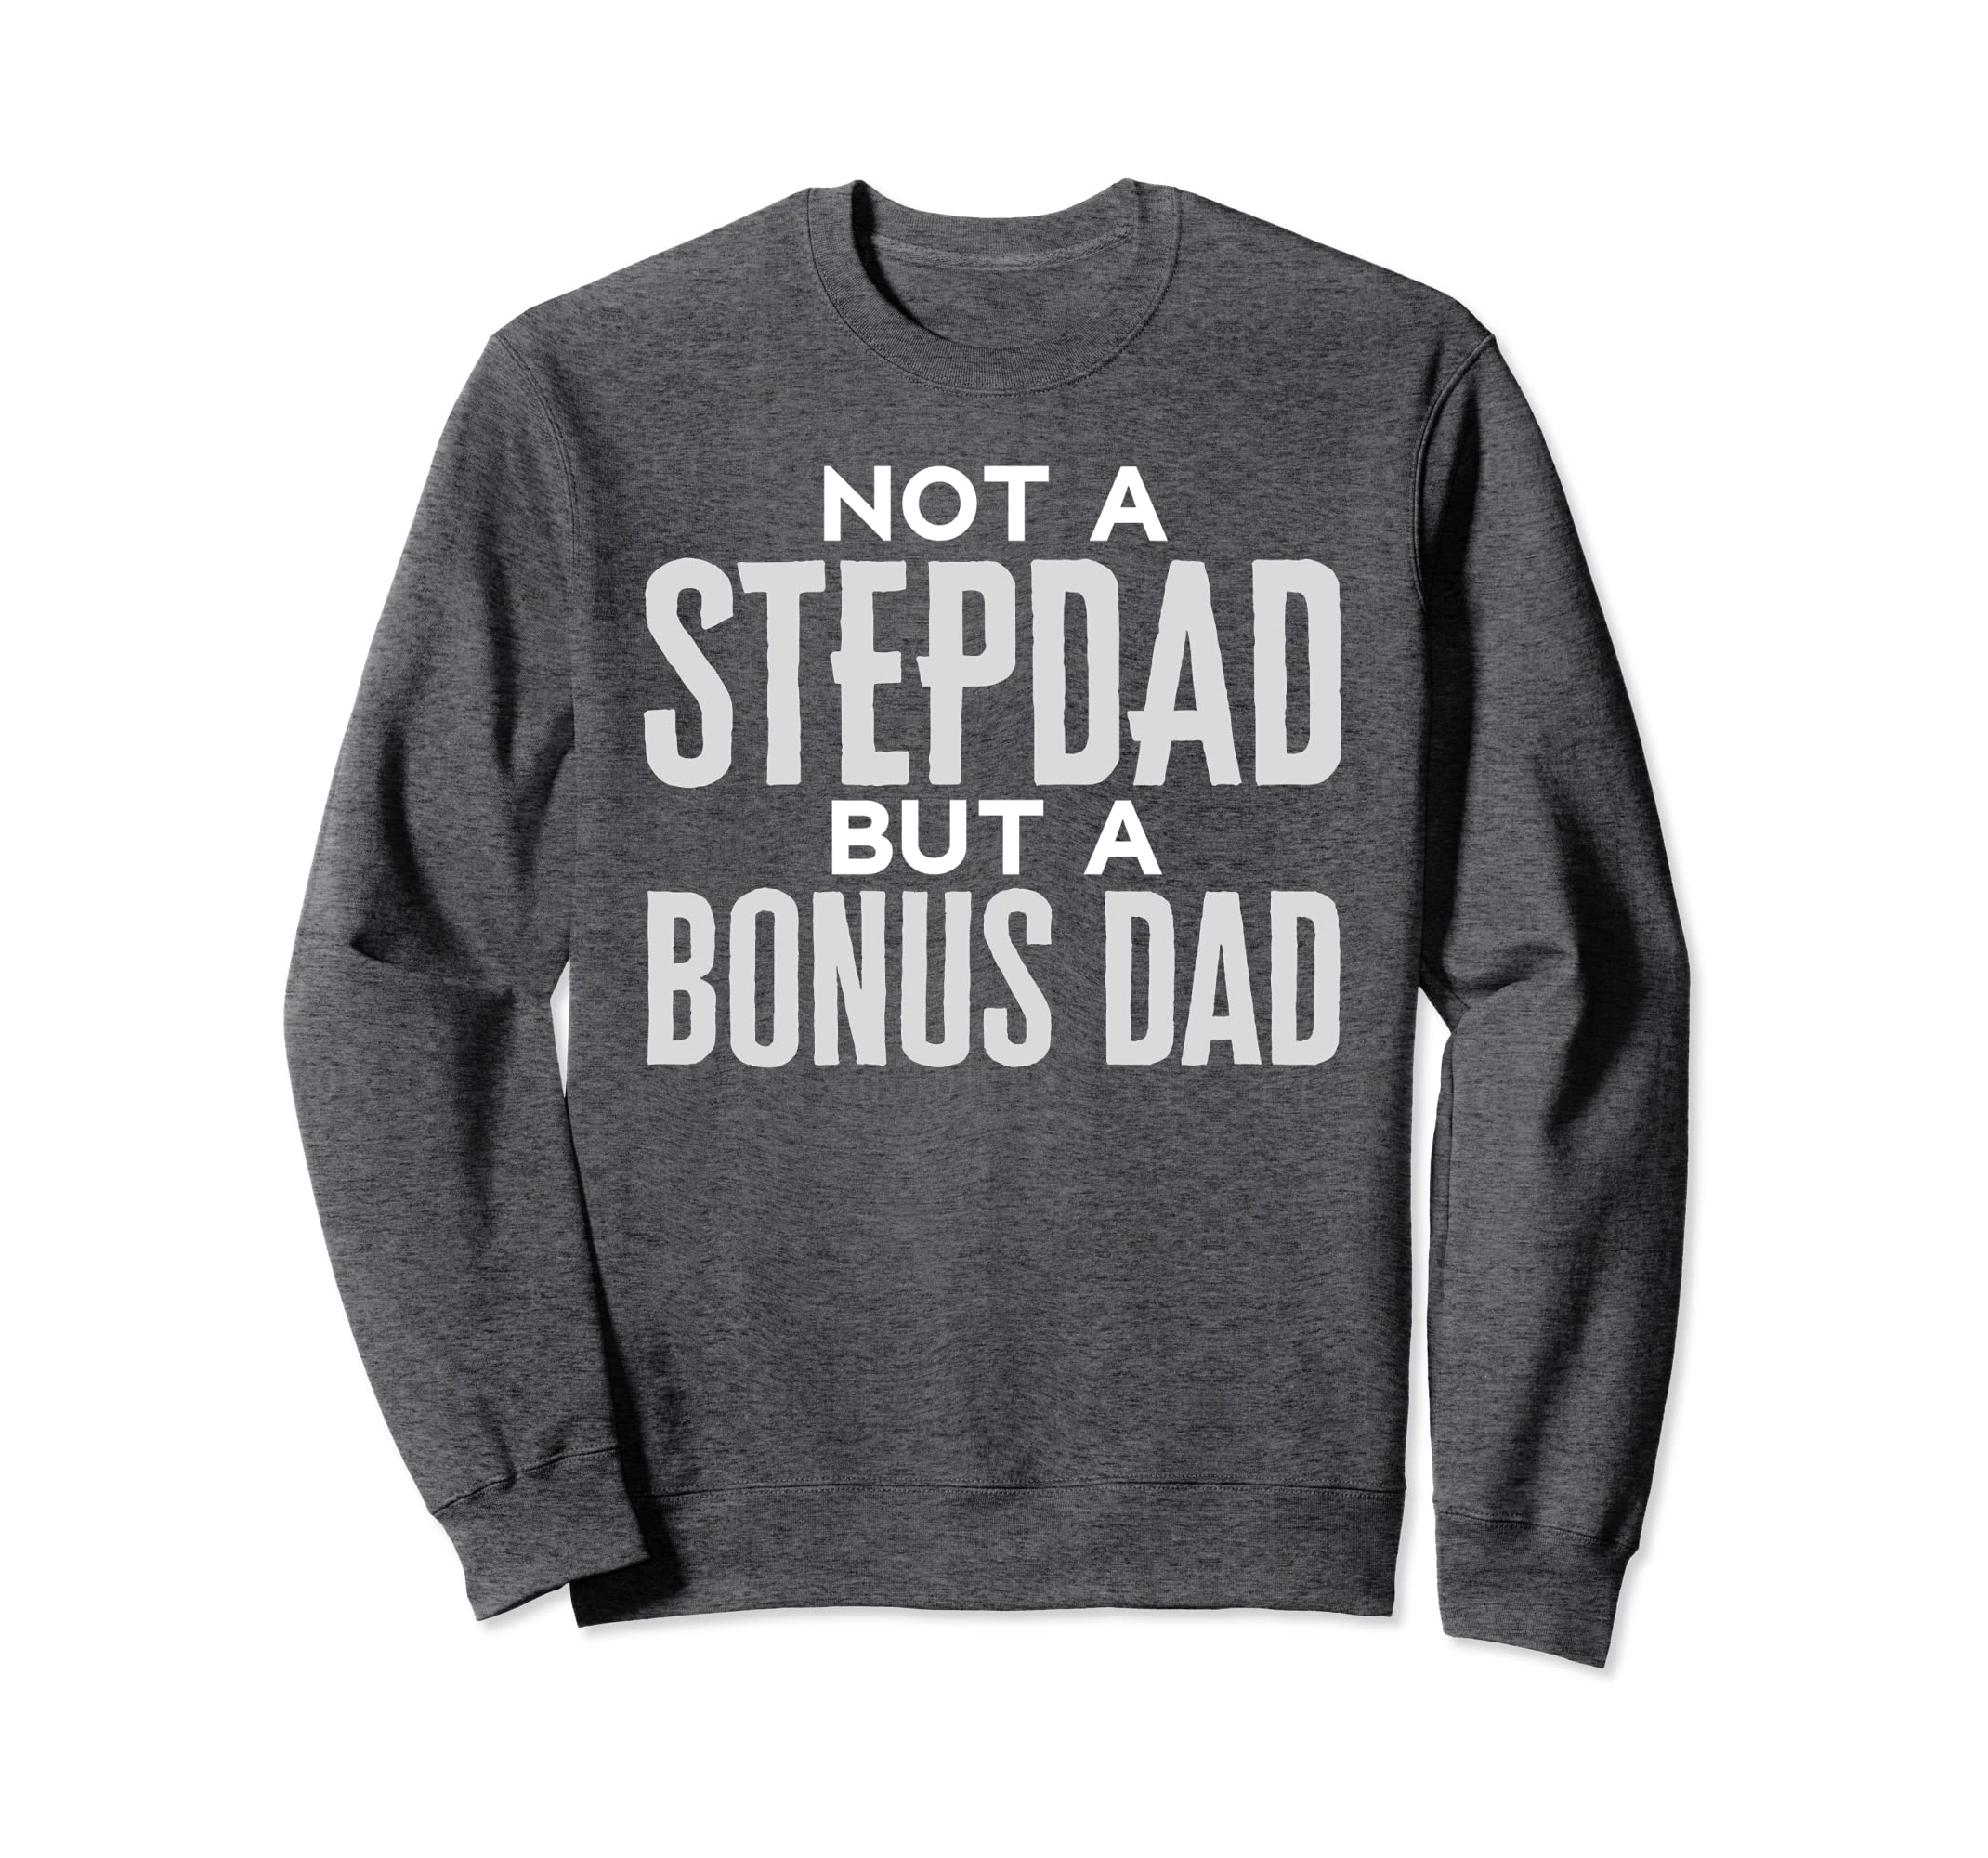 c46edd5a8 Amazon.com: Stepdad Sweatshirt Not A Step Dad But A Bonus Dad: Clothing